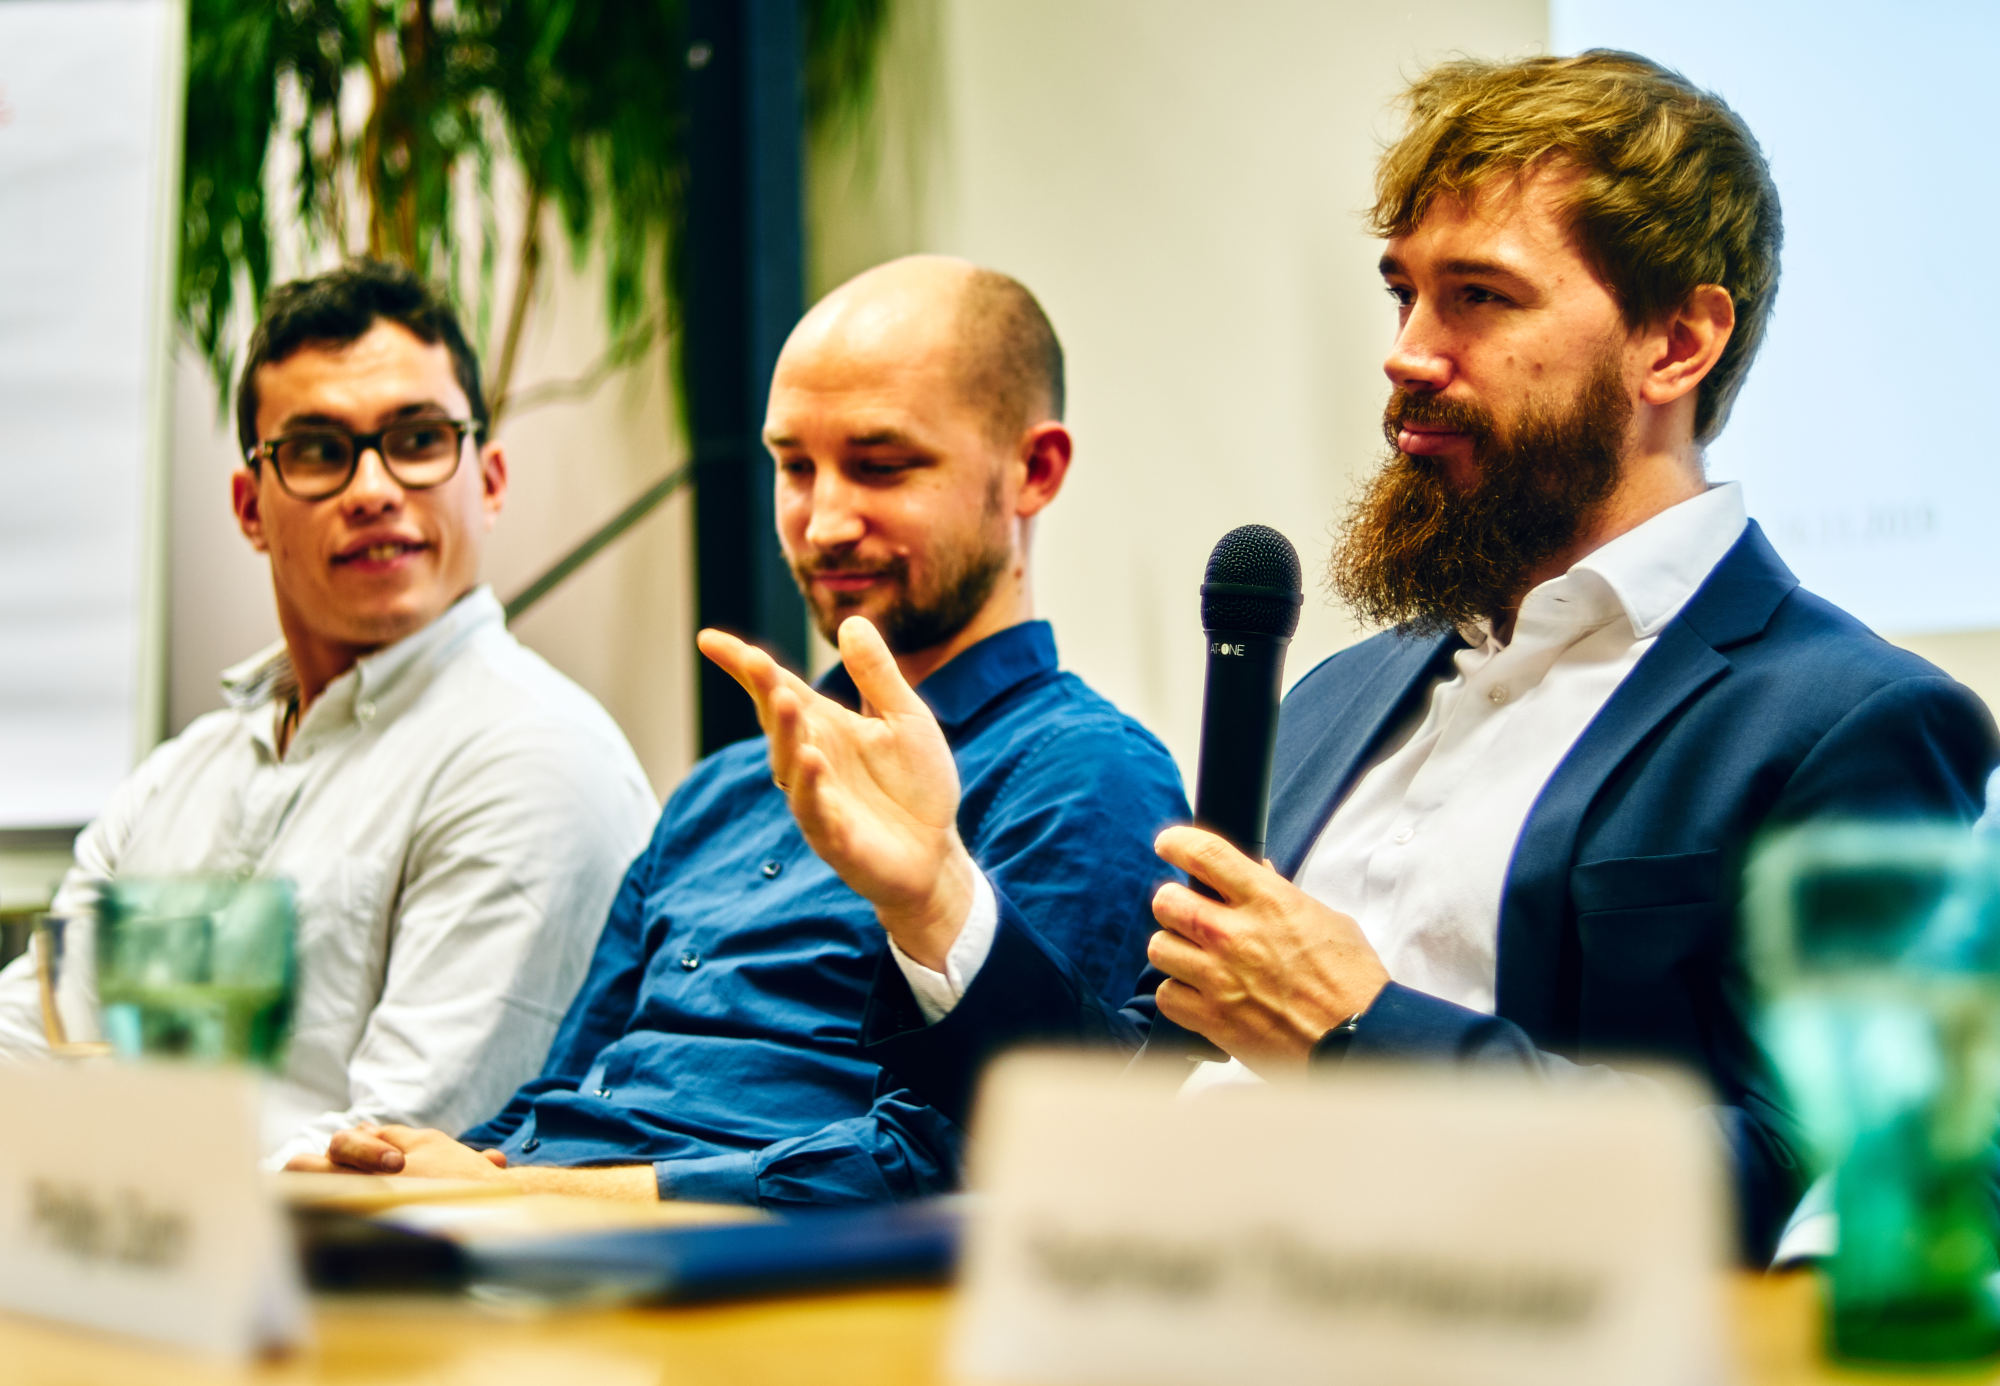 Entre­pre­neurship Night 2019 — nicht grund­los grün­den